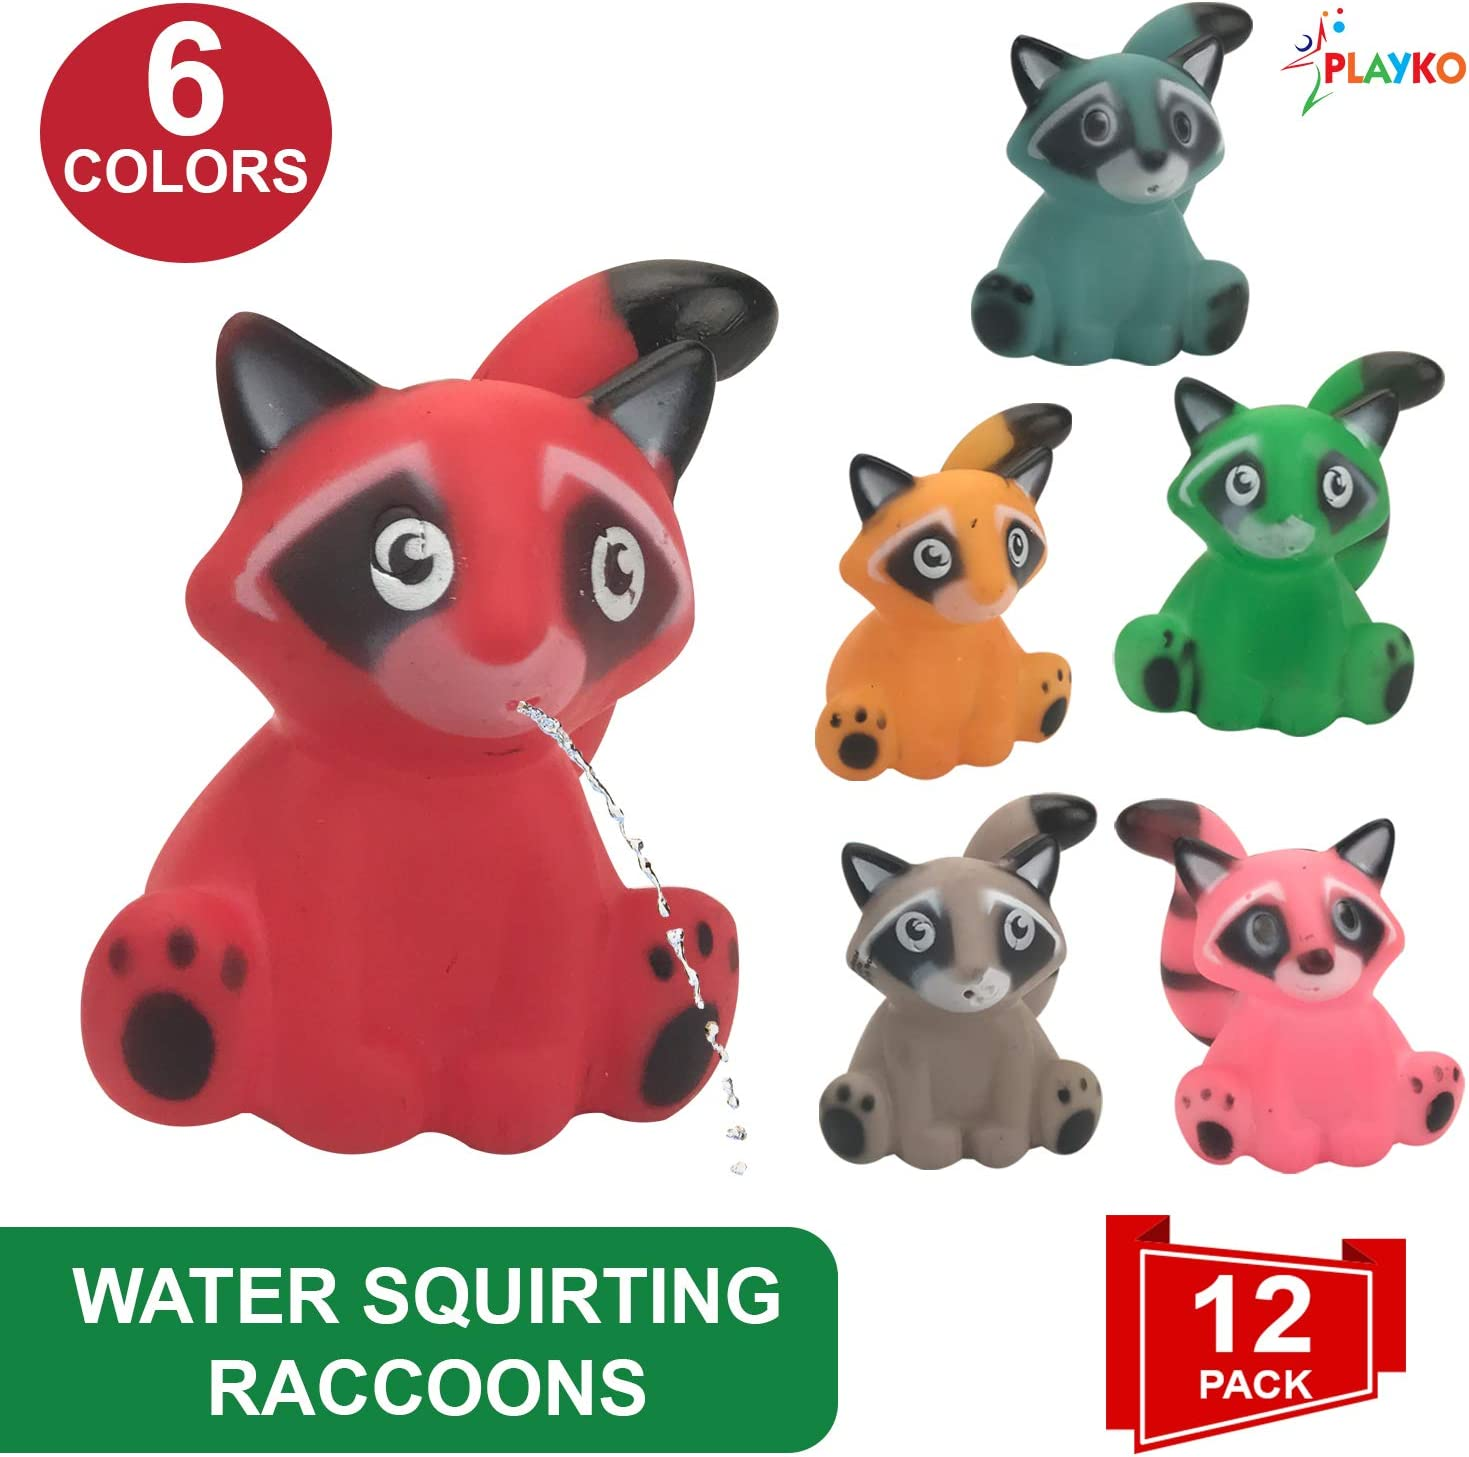 Elephant Water Squirting Bath Toys Pack of 12 Livativ Playko 2 Inch Animal Water Squirter Bath Toys Pack of 12 Animal Shaped Bath Toys for Kids and Toddlers Party Favors Goodie Bag Stuffers